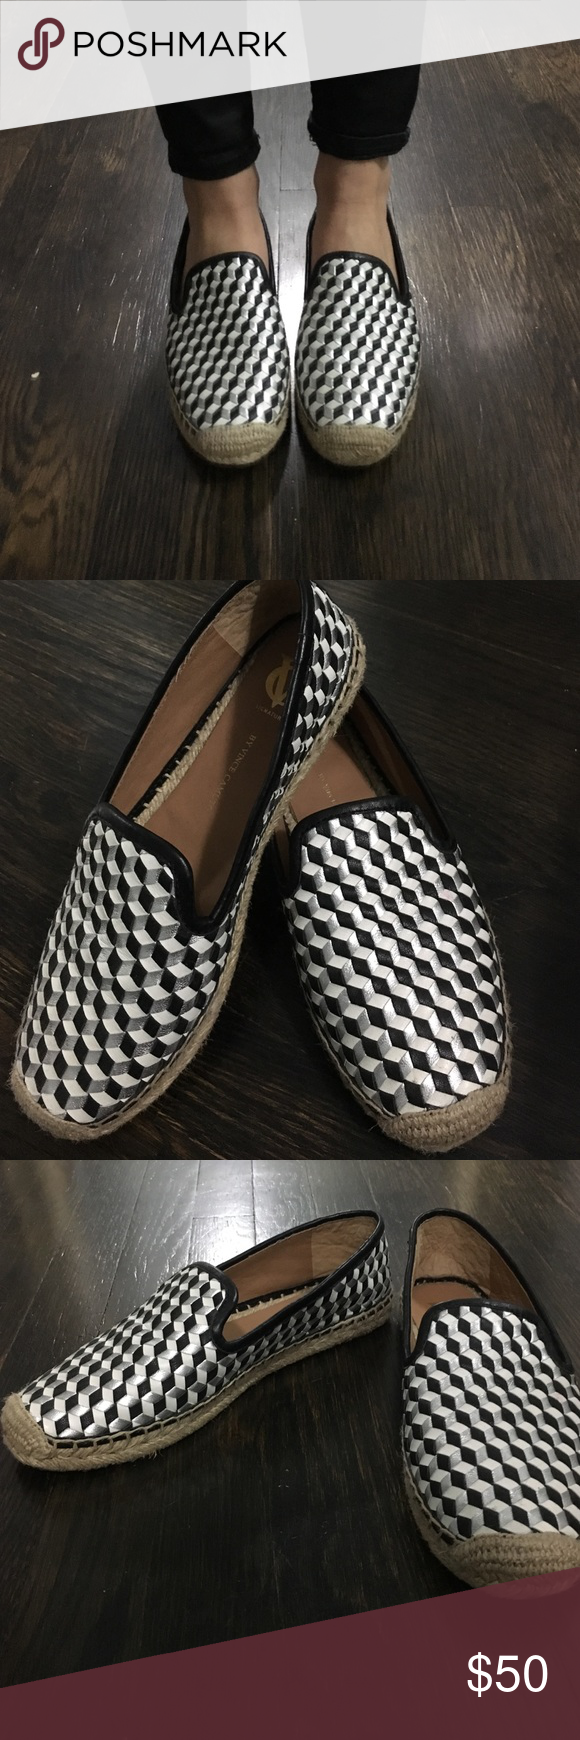 Vince Camuto slip on loafers The leather black, white and silver design makes these loafers super cute and versatile. The sole on the outside of the shoe is a straw-like material. Love these, they just don't fit me right! Never worn outside. Vince Camuto Shoes